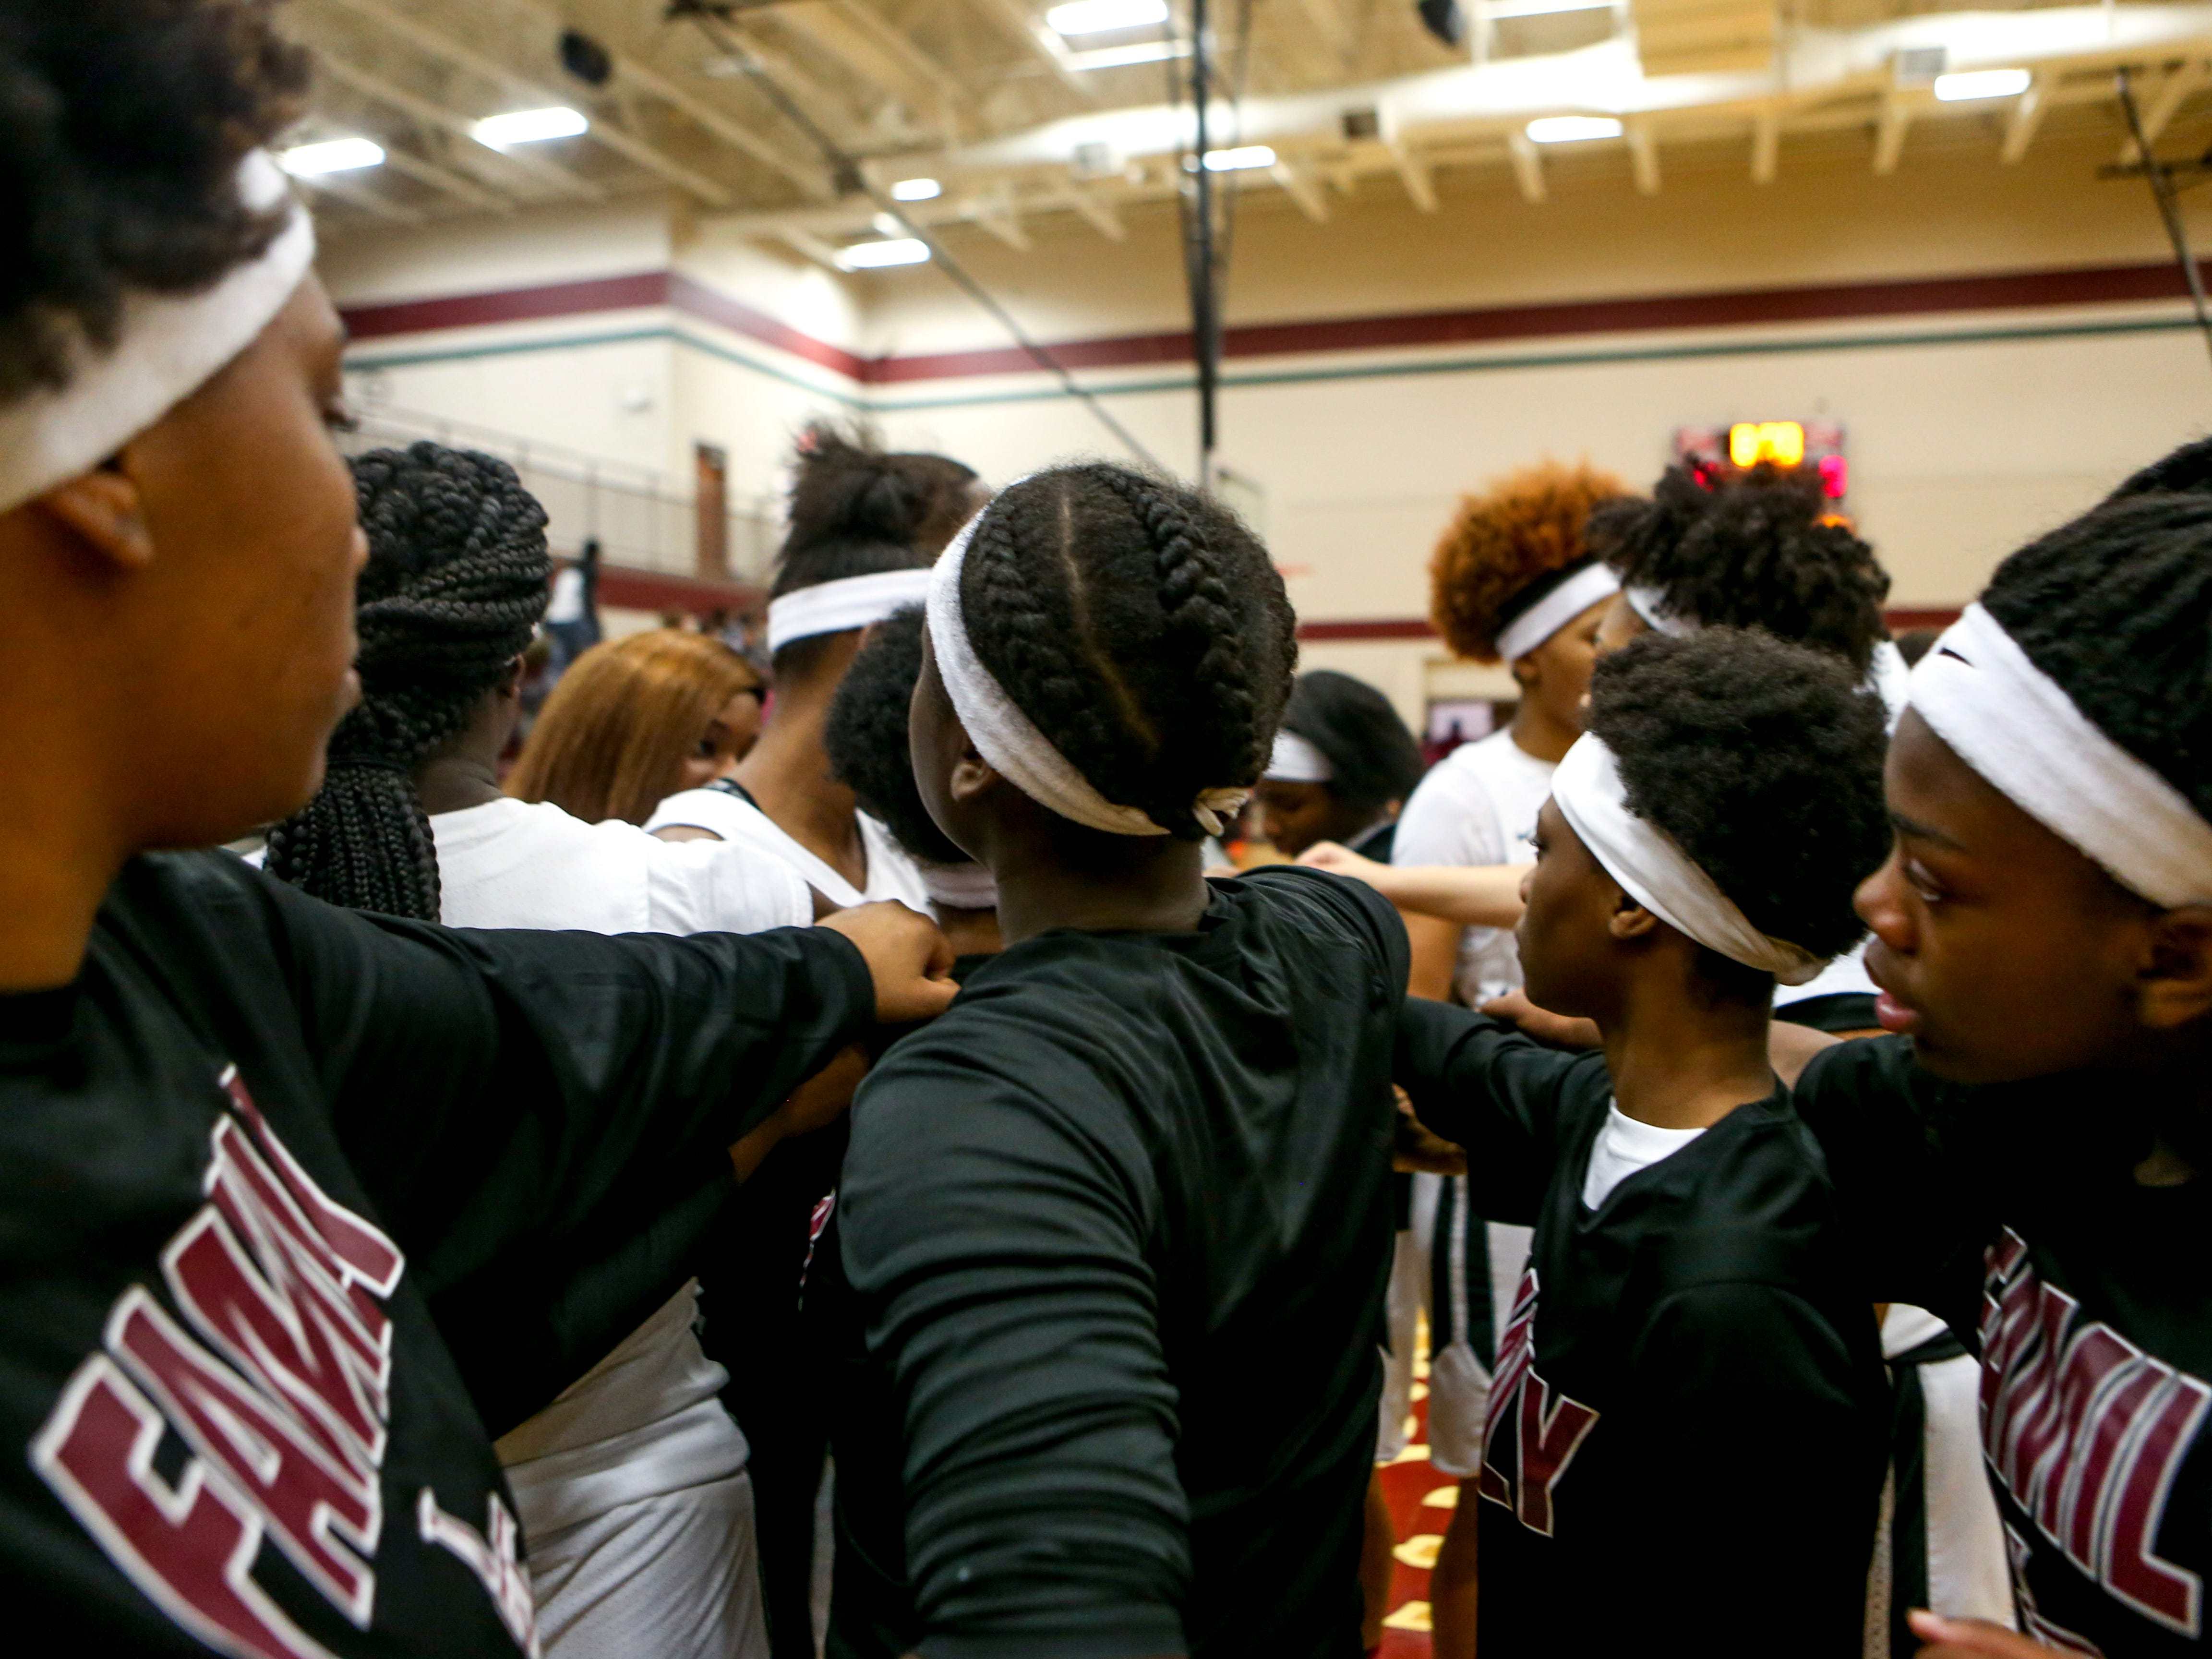 Liberty players all wore white head bands in honor of their teammate Nyjah Jackson that had to transfer schools and her mother Nyema Jackson that lost her life in an accident in an ambulance over the weekend at a TSSAA girls basketball game where Liberty played Ripley High School at Liberty Tech High School in Jackson, Tenn., on Tuesday, Dec. 4, 2018.